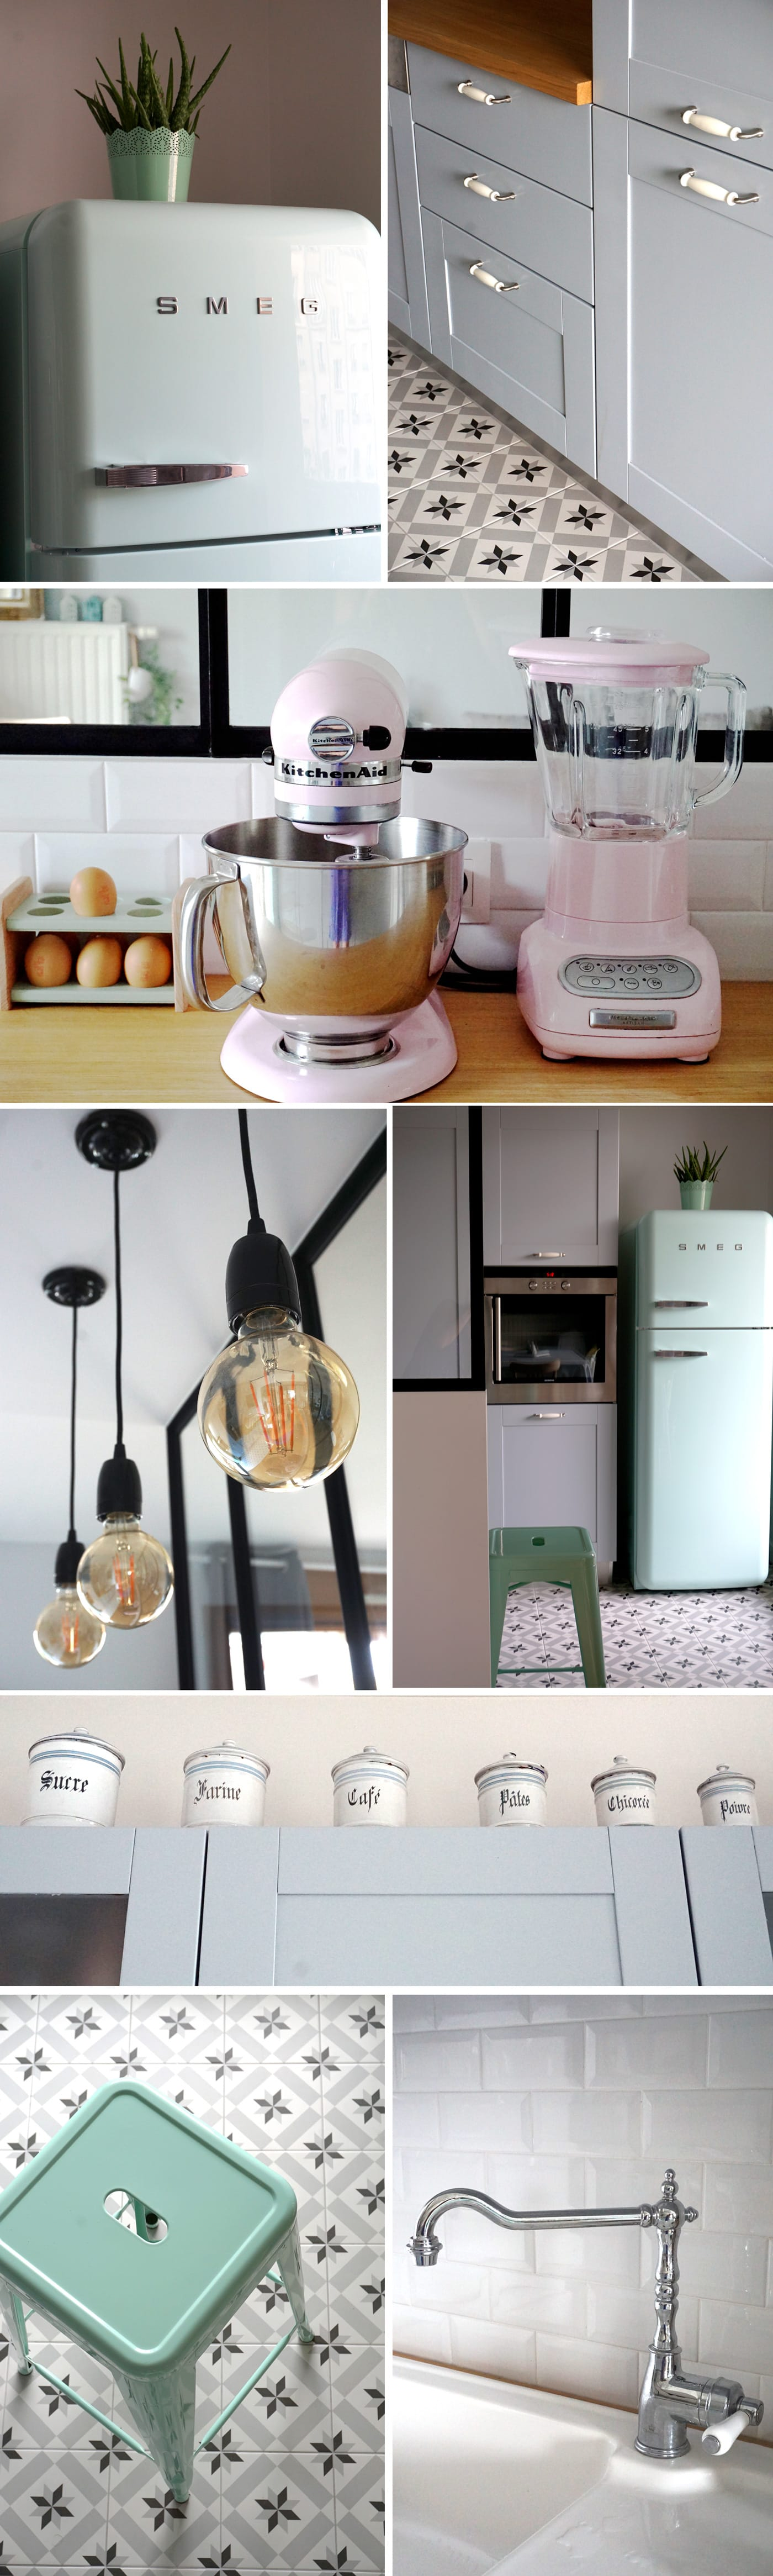 Home tour : ma cuisine vintage industrielle - Smeg et Kitchenaid